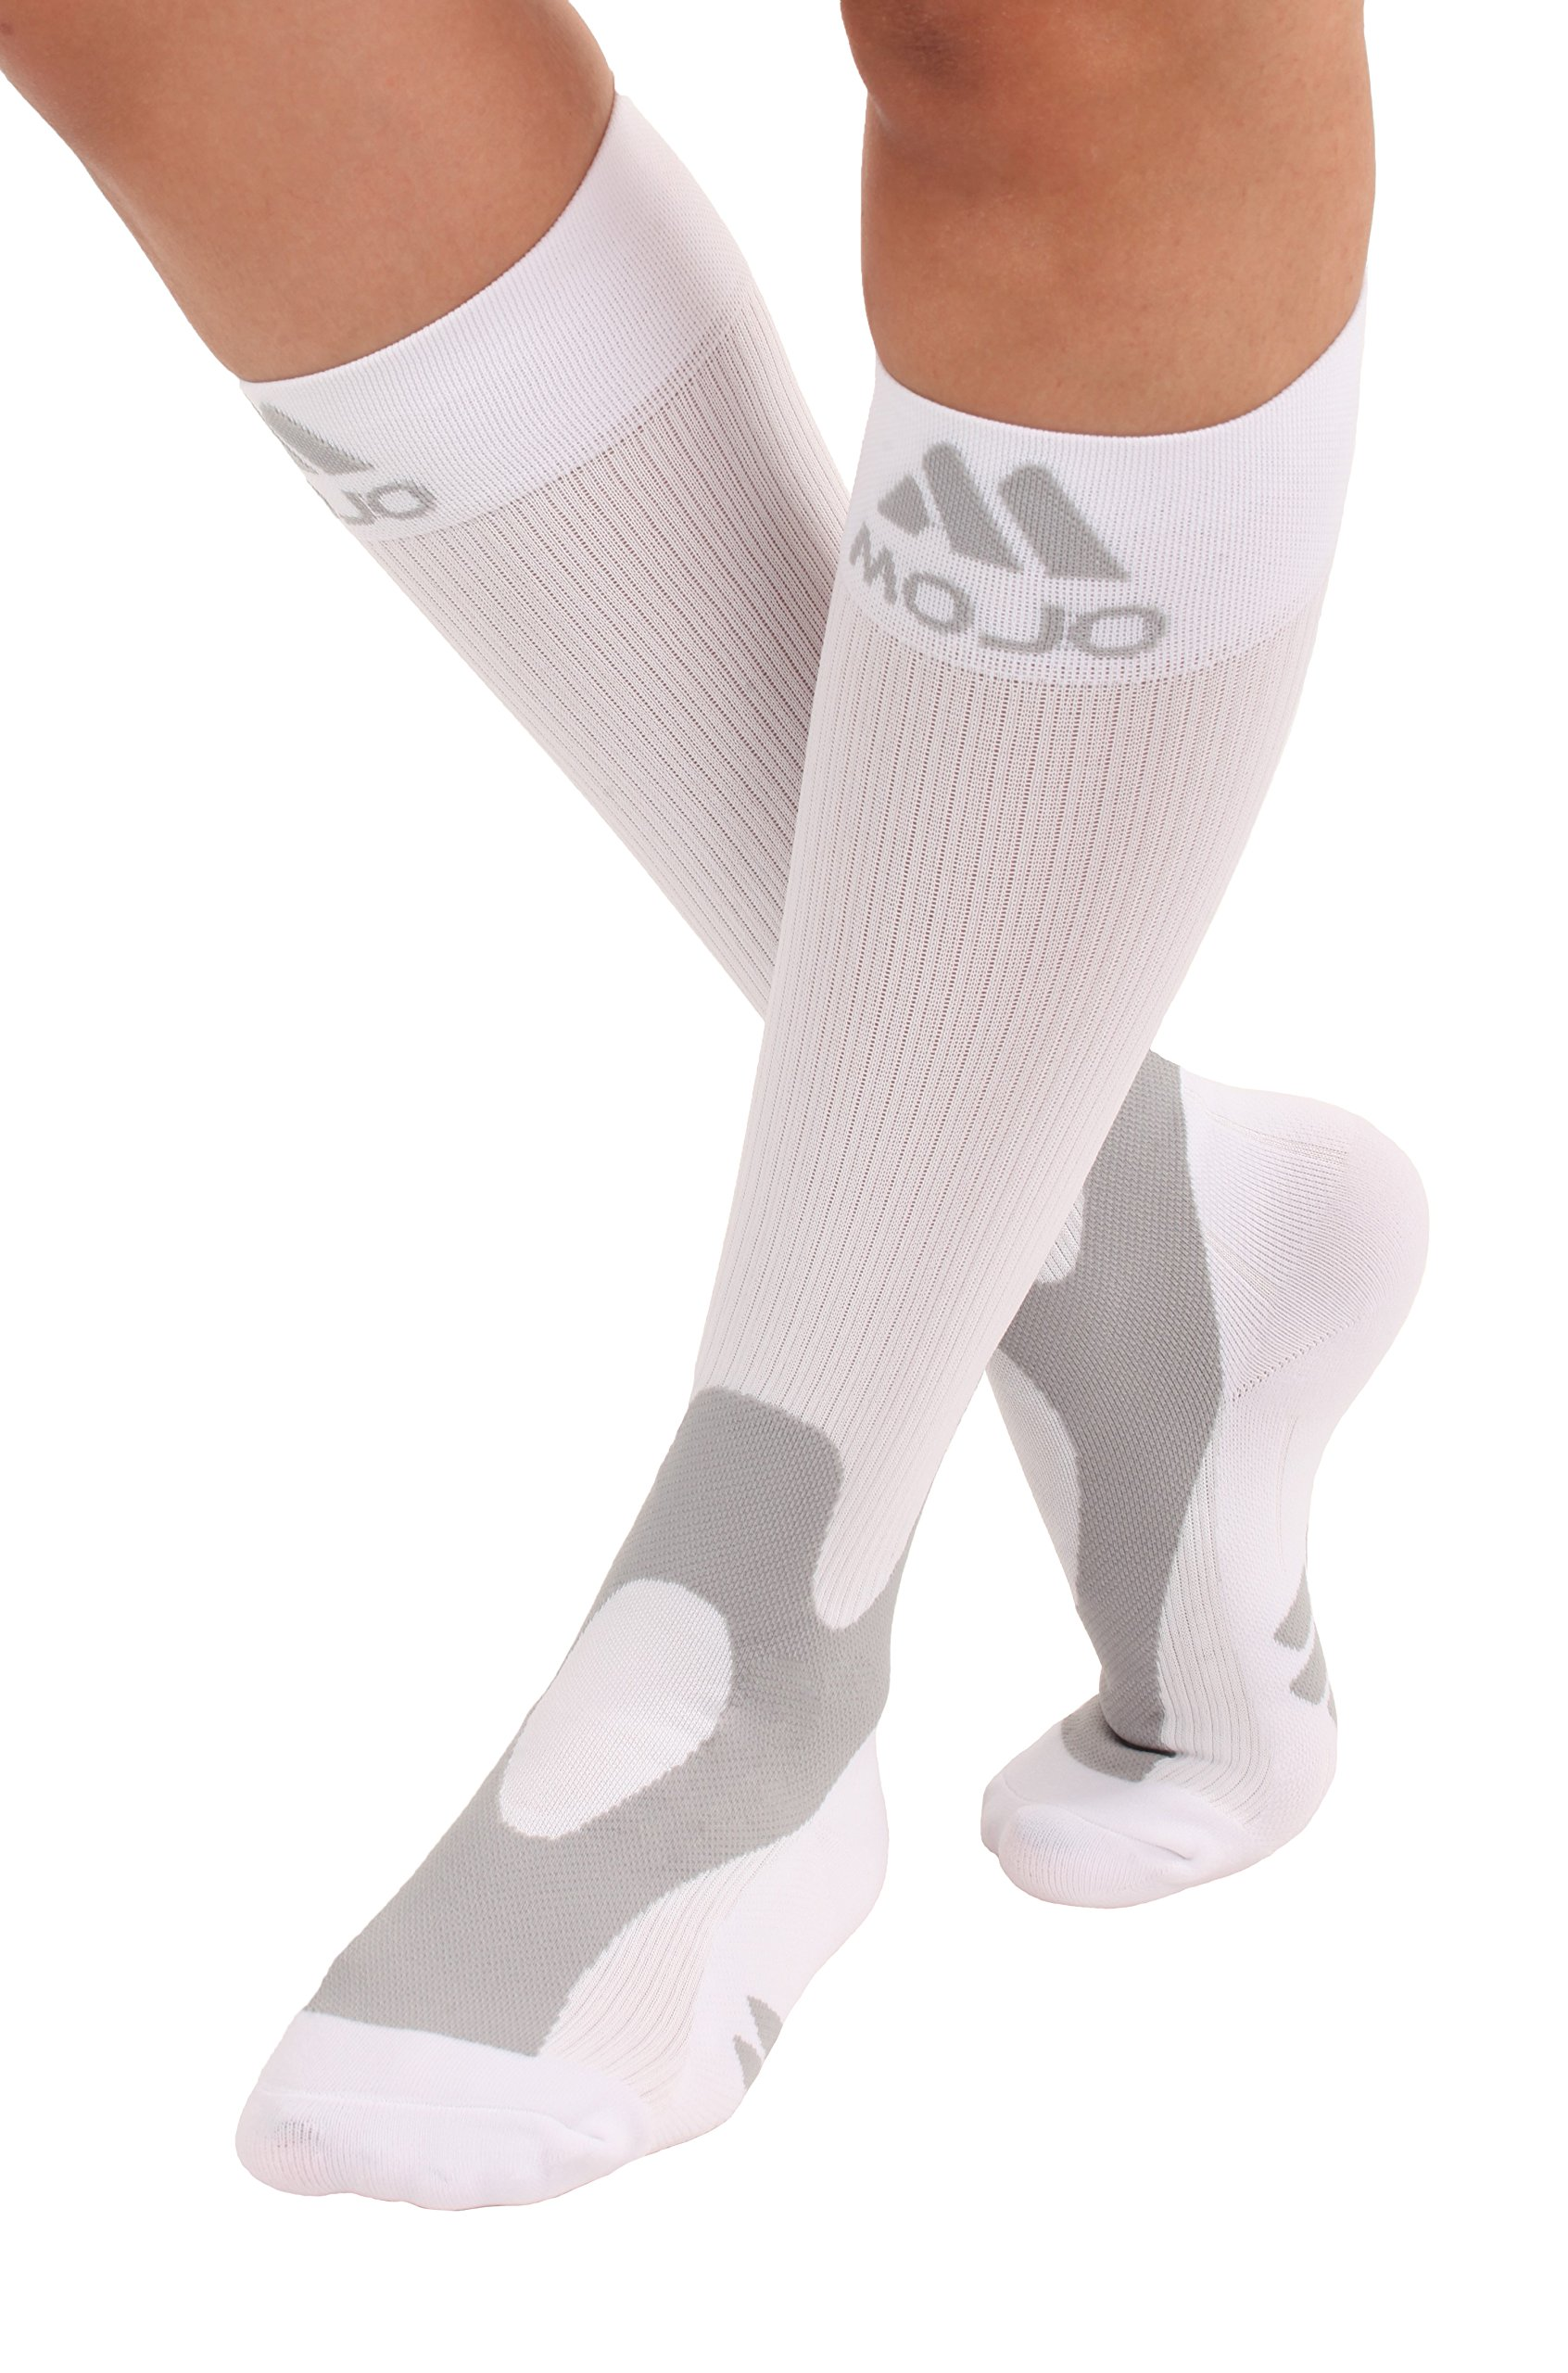 88f3d86f55 Amazon.com: Mojo Compression Socks 20-30 Made with Coolmax and Soft ...